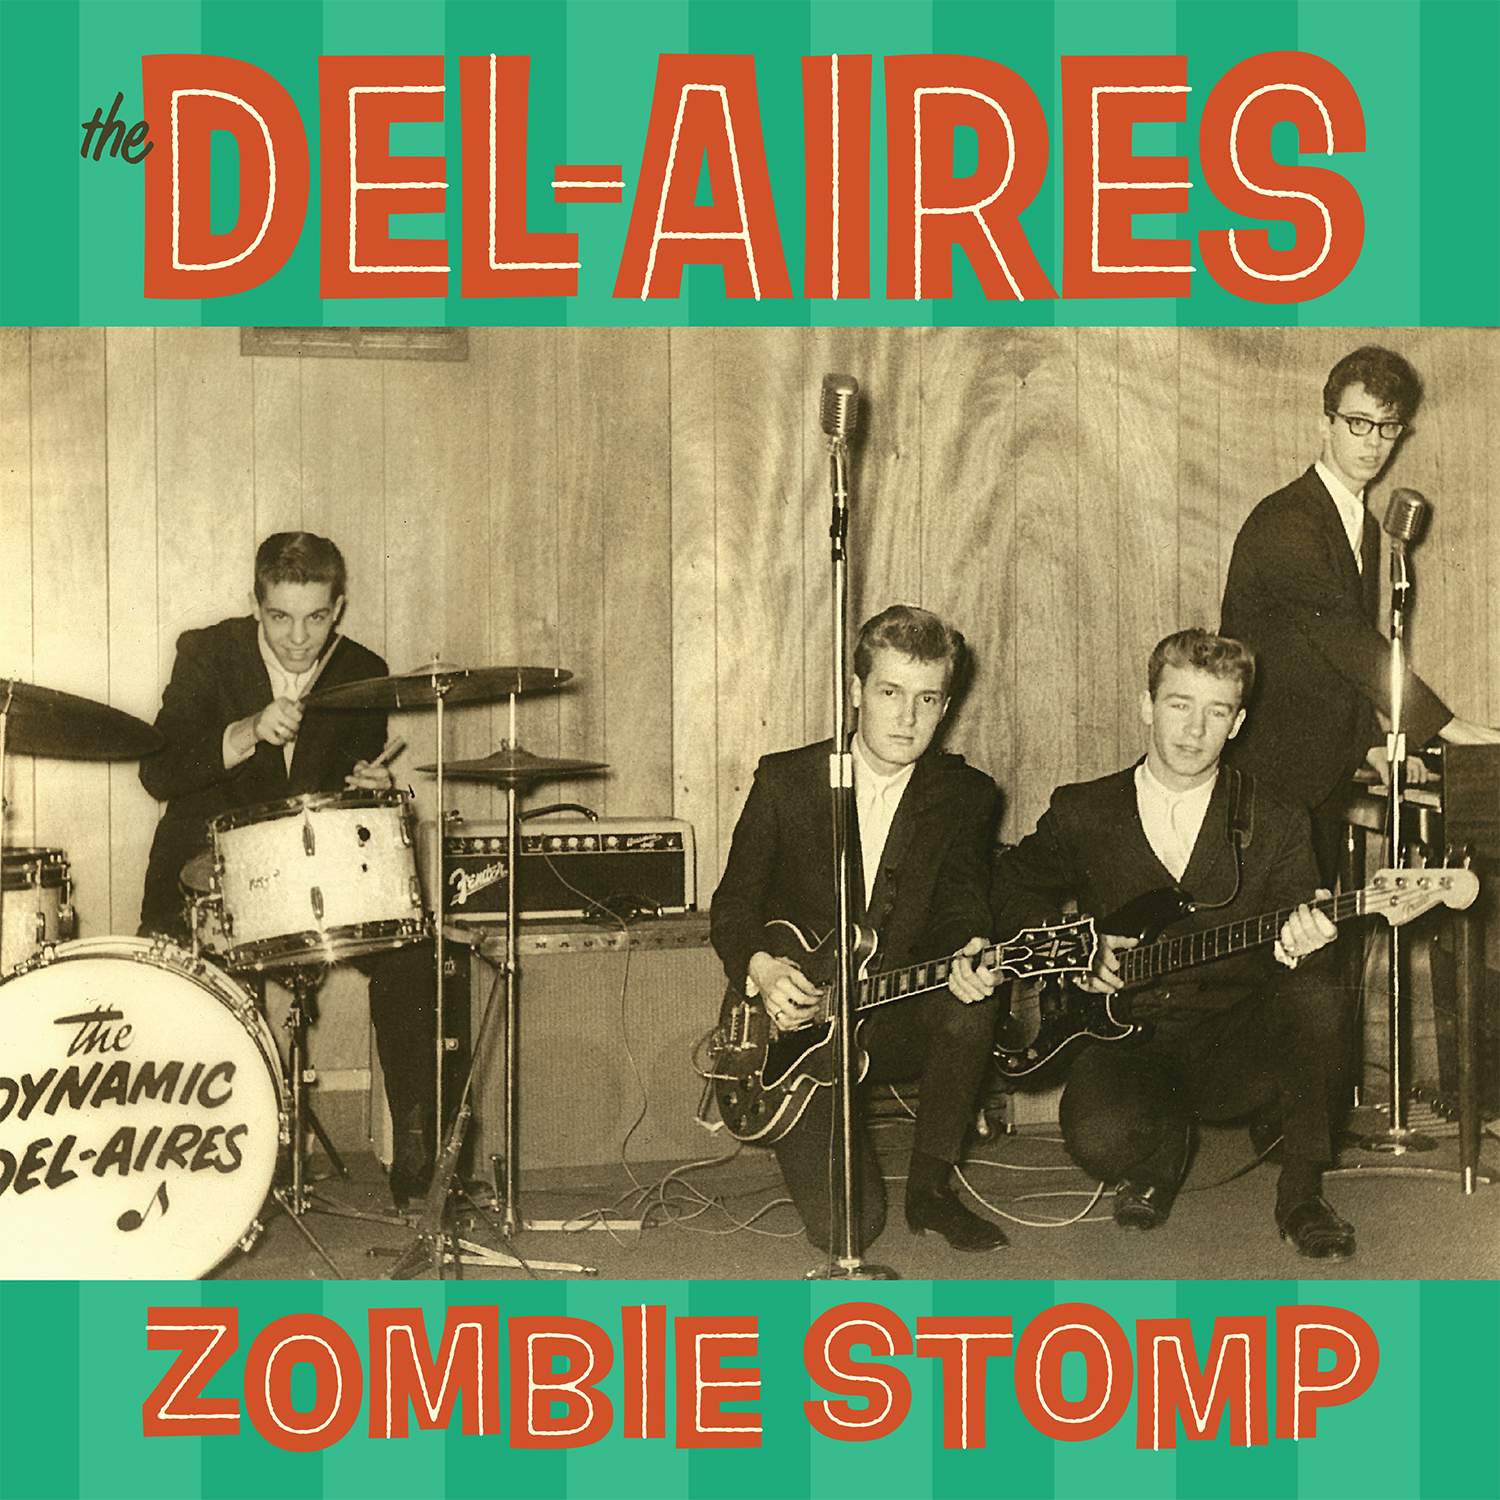 The Del-Aires - Zombie Stomp LP cover